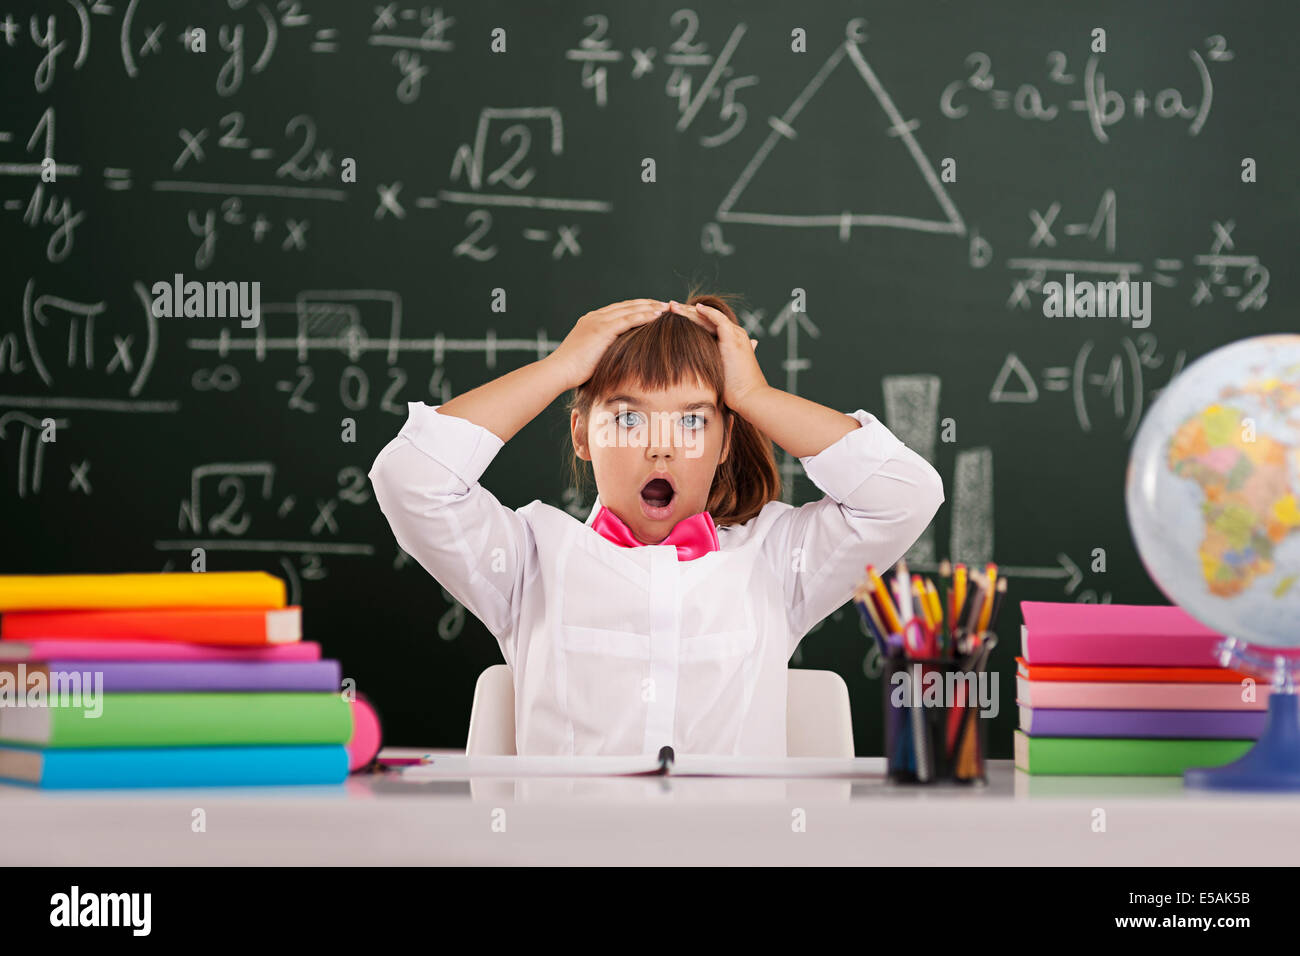 Shocked cute pupil in classroom, Debica, Poland - Stock Image